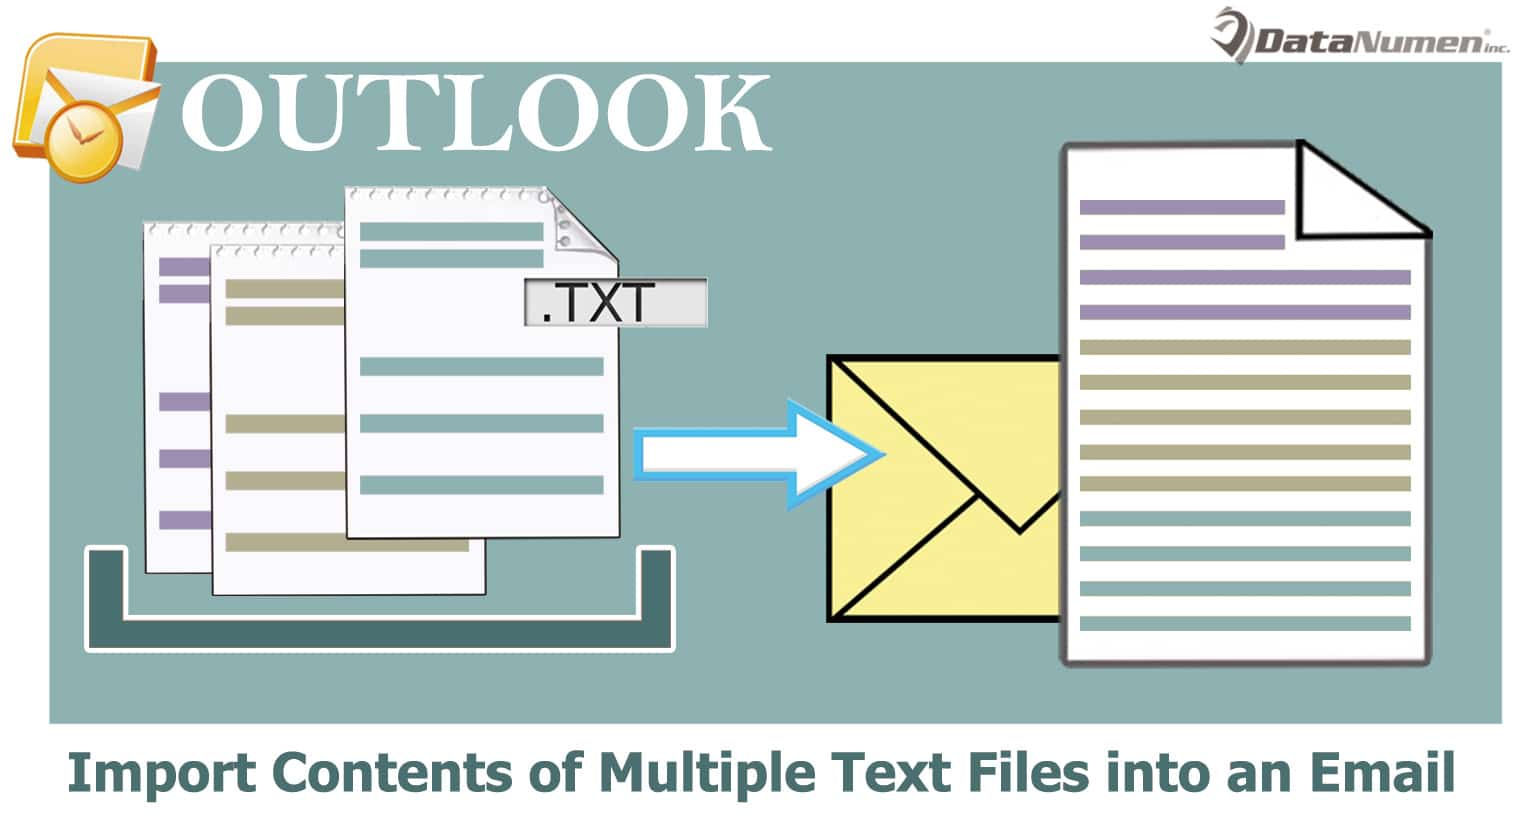 Quickly Merge & Import the Contents of Multiple Text Files into an Outlook Email